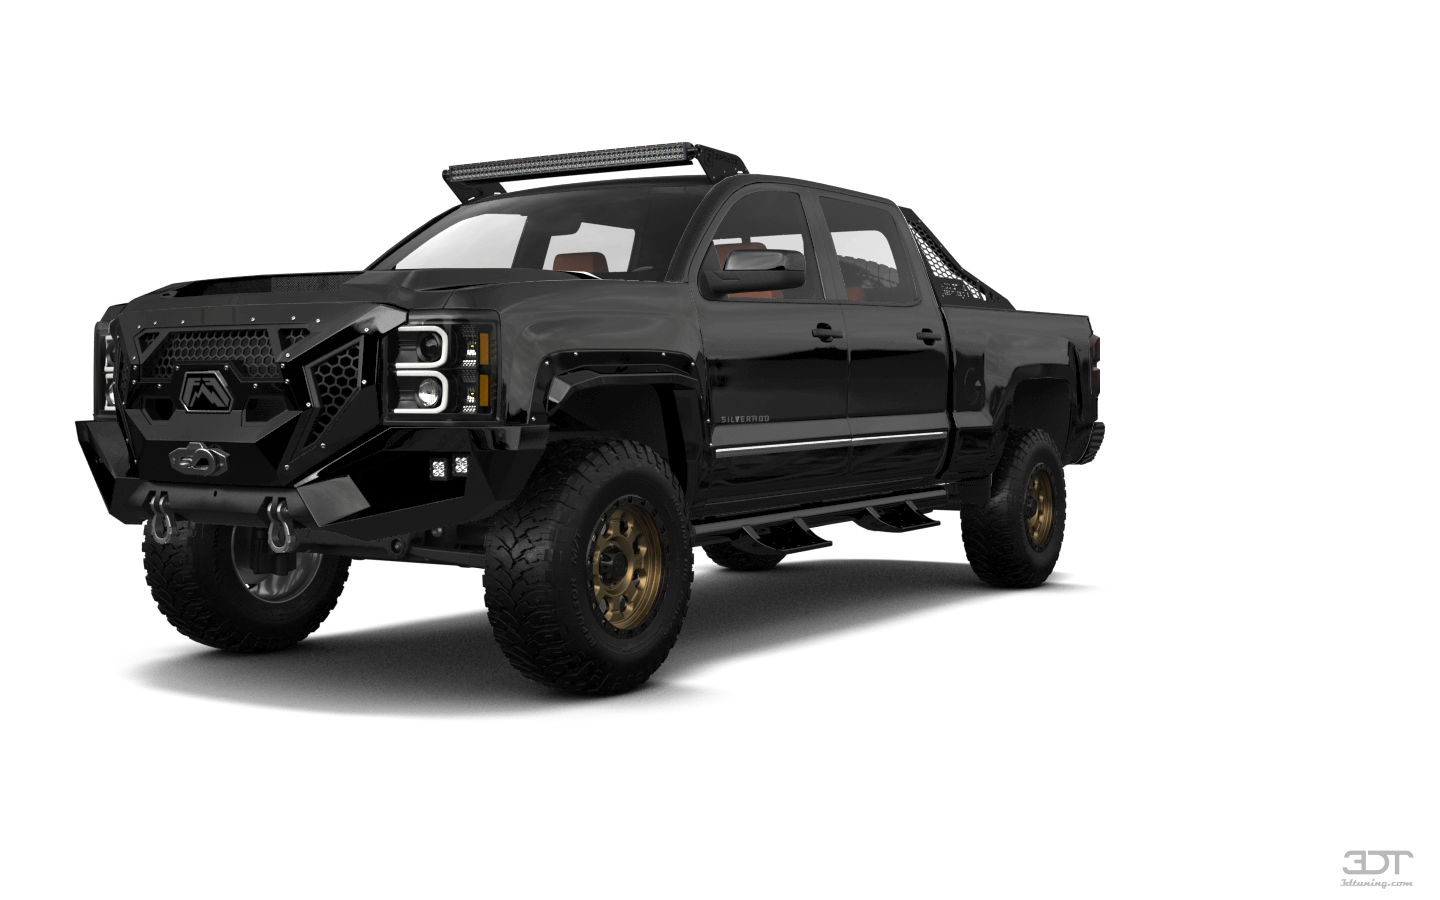 Chevrolet Silverado 2500 4 Door pickup truck 2015 tuning